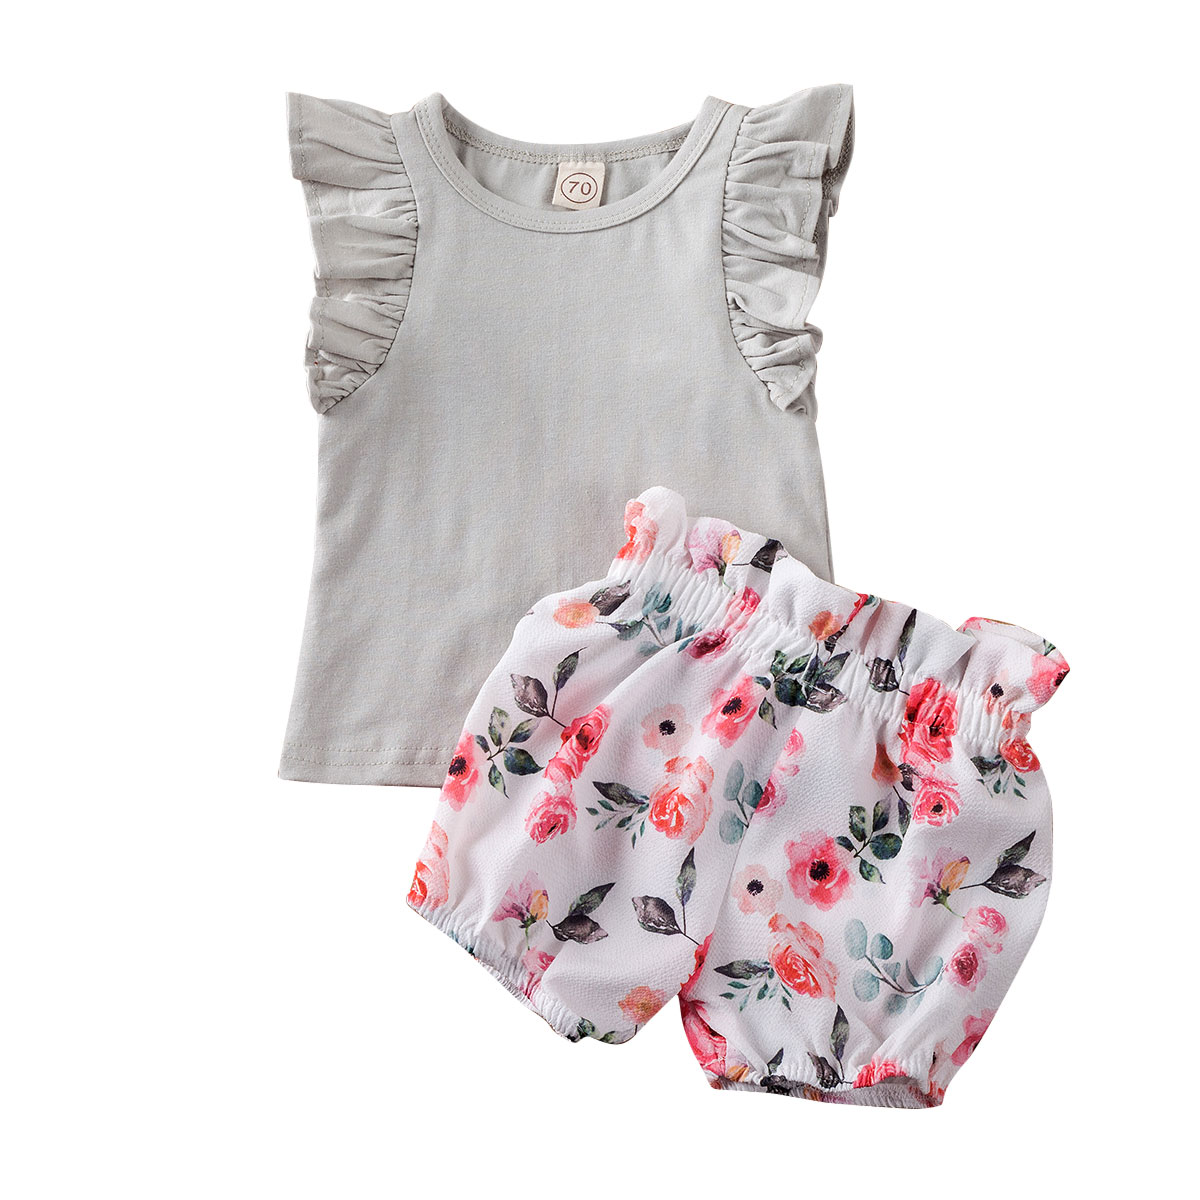 Newborn Infant Baby Girl Clothes Sets Ruffles Sleeve Solid Tops+Floral Shorts Pants Summer Outfit Clothes 3-18M